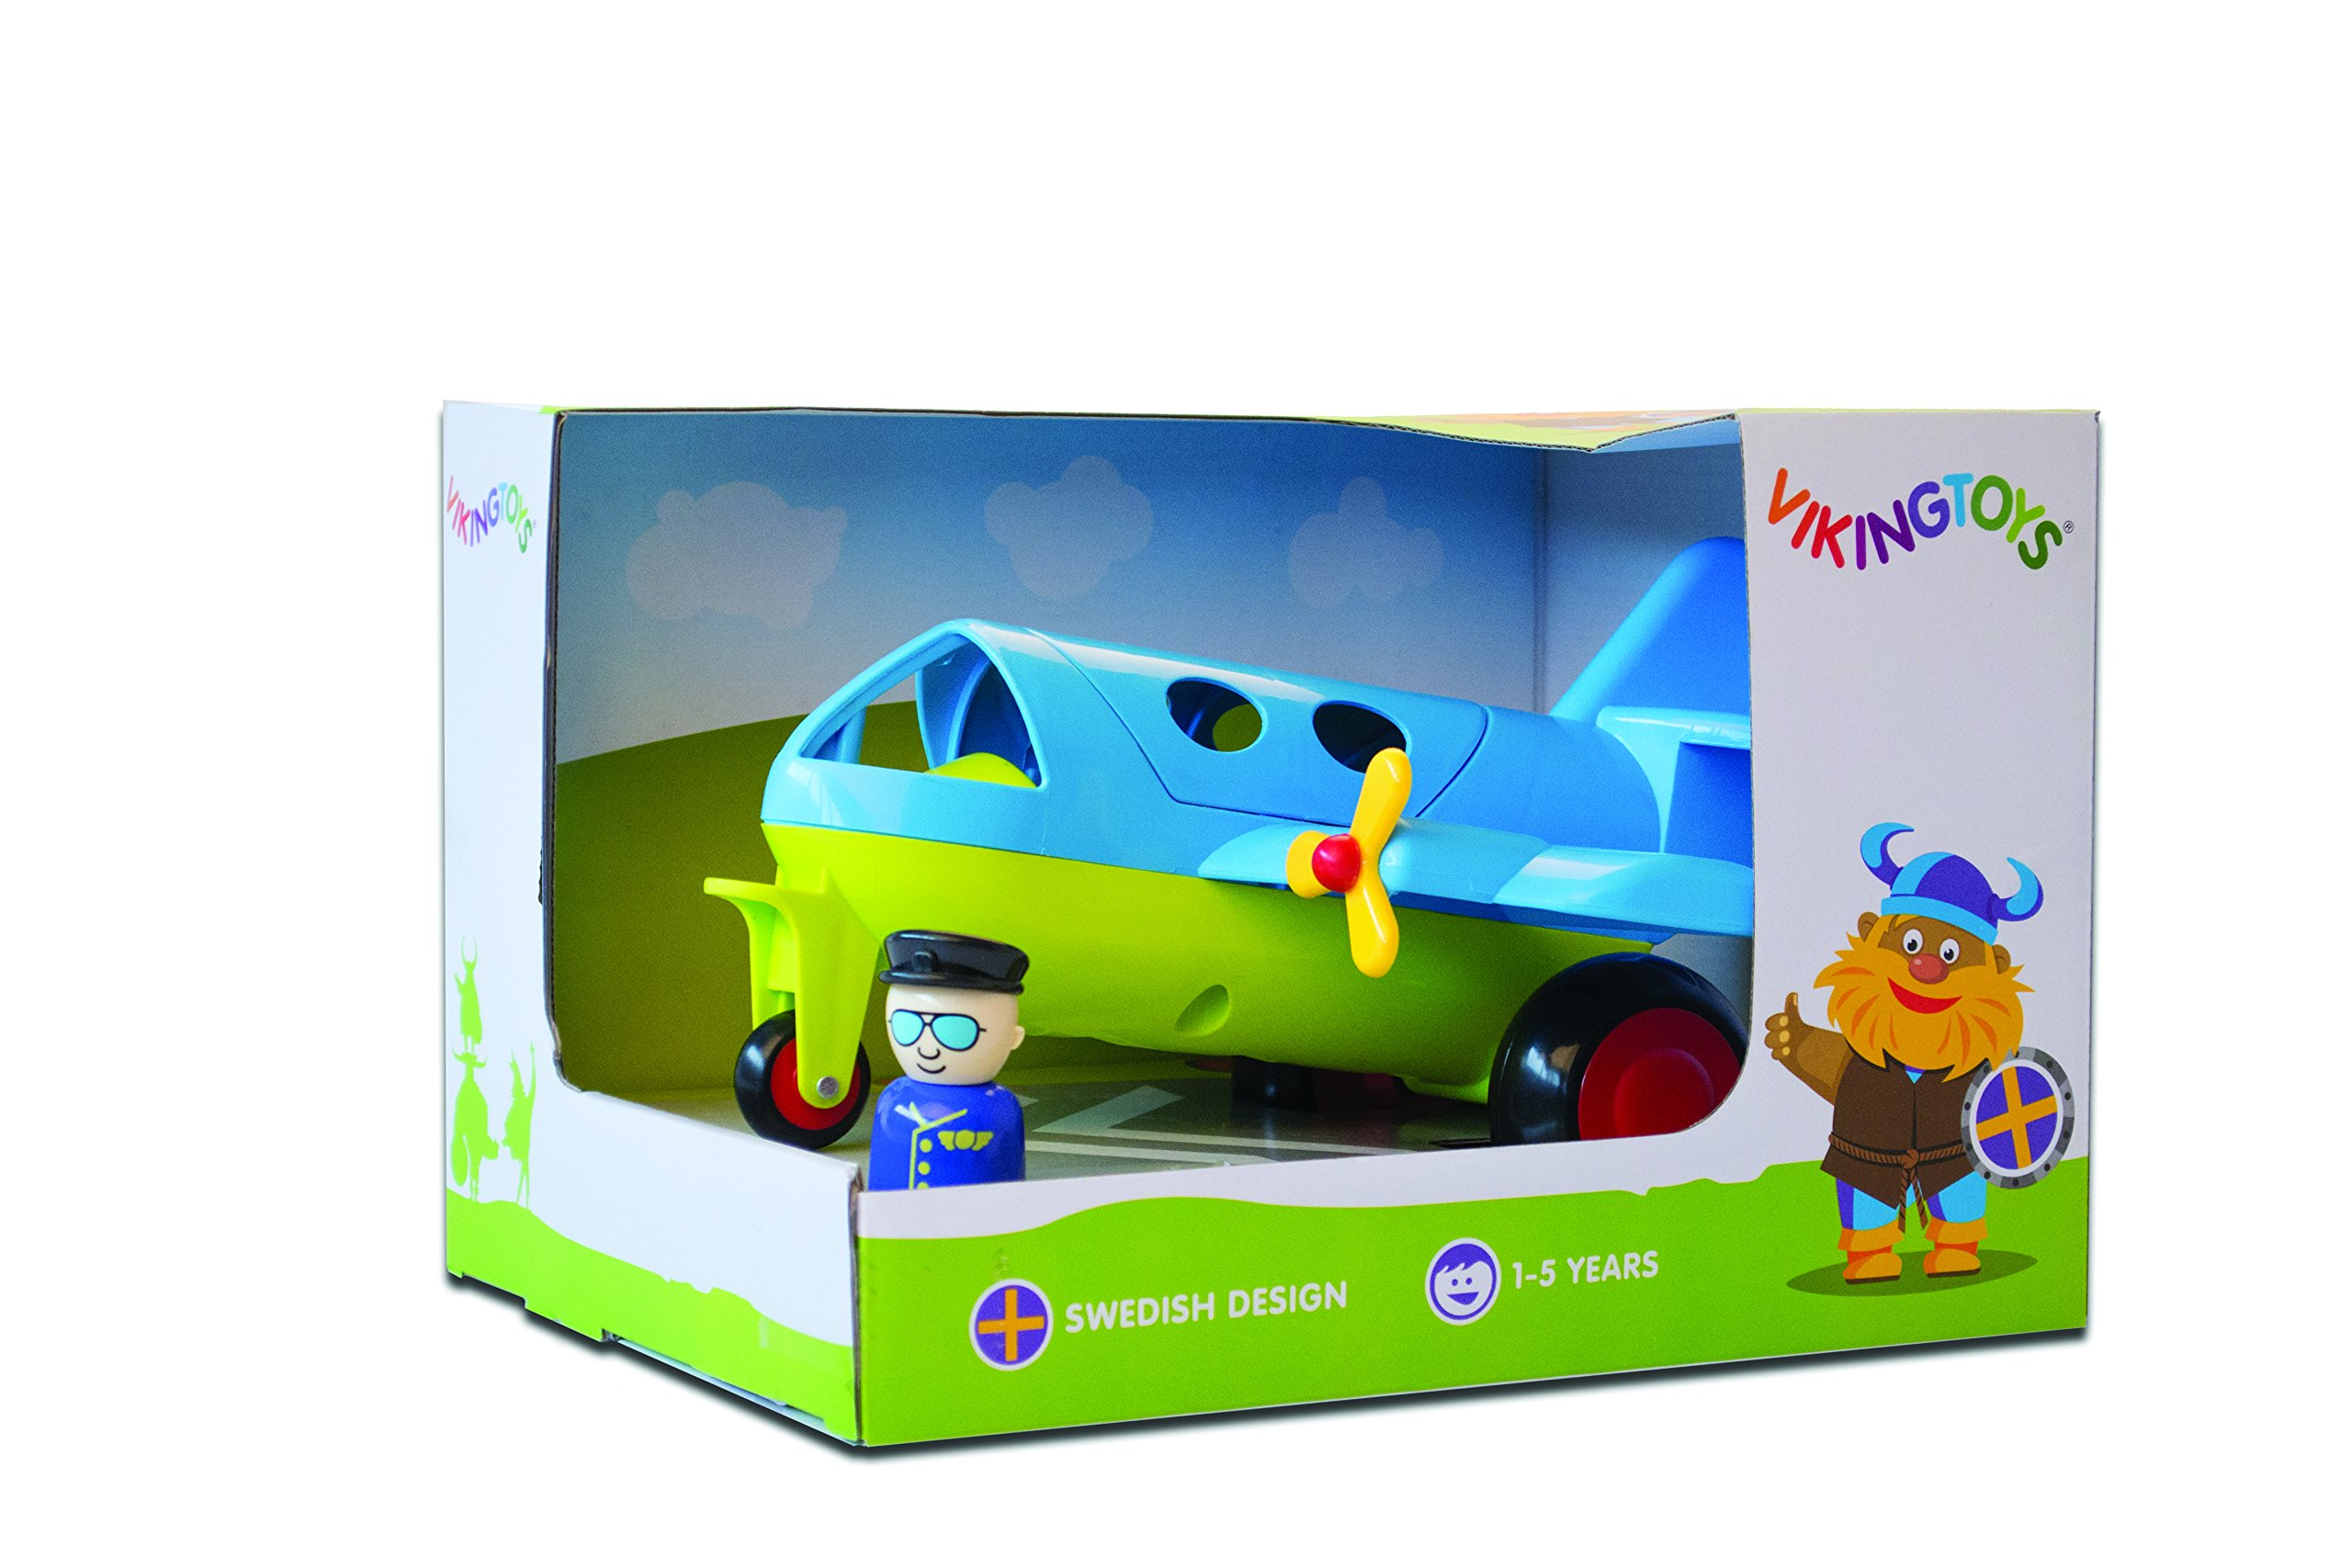 Viking Large Fun Color Jet Plane 10'' with Removable Pilot & Passenger & Extra Seats! - Dishwasher Safe - Indoor & Outdoor Use - Ages 12 Months and Up